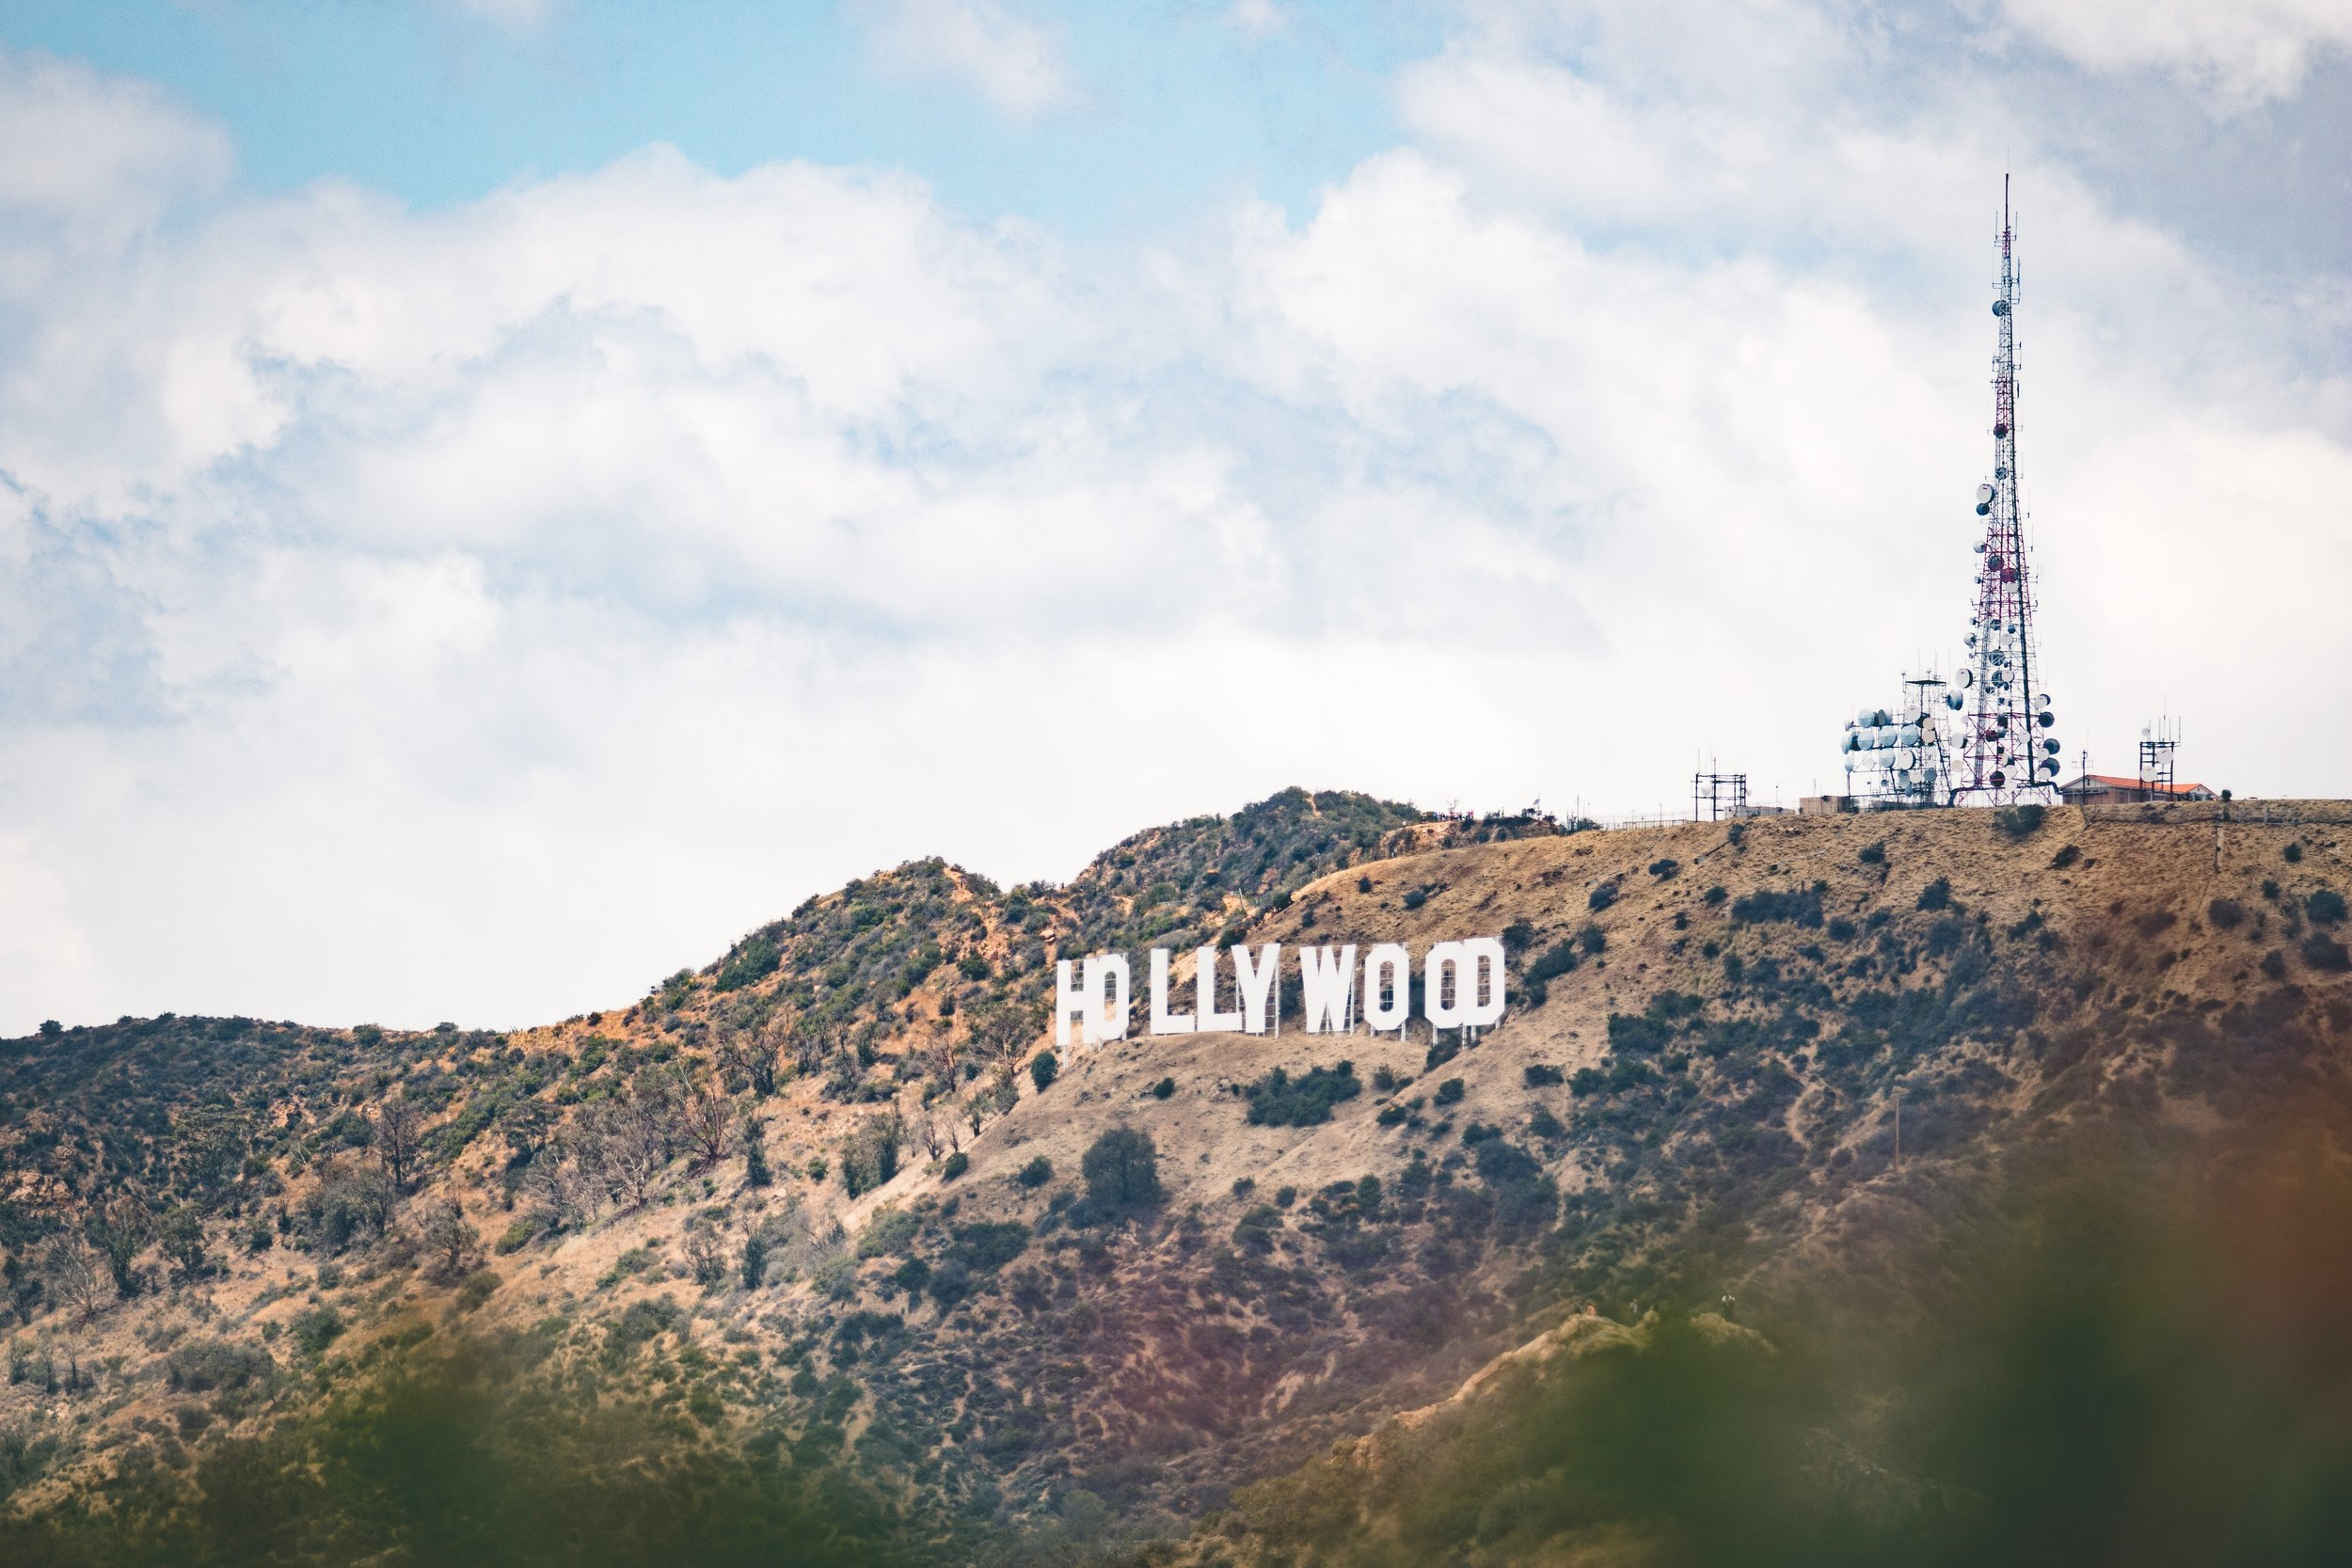 Is Hollywood's Fashionable Politics Just a Screen for Its Lack of Moral Substance?      ABC: The Minefield     October 2017  About: Alissa Wilkinson, 2017 ADM Visiting Fellow